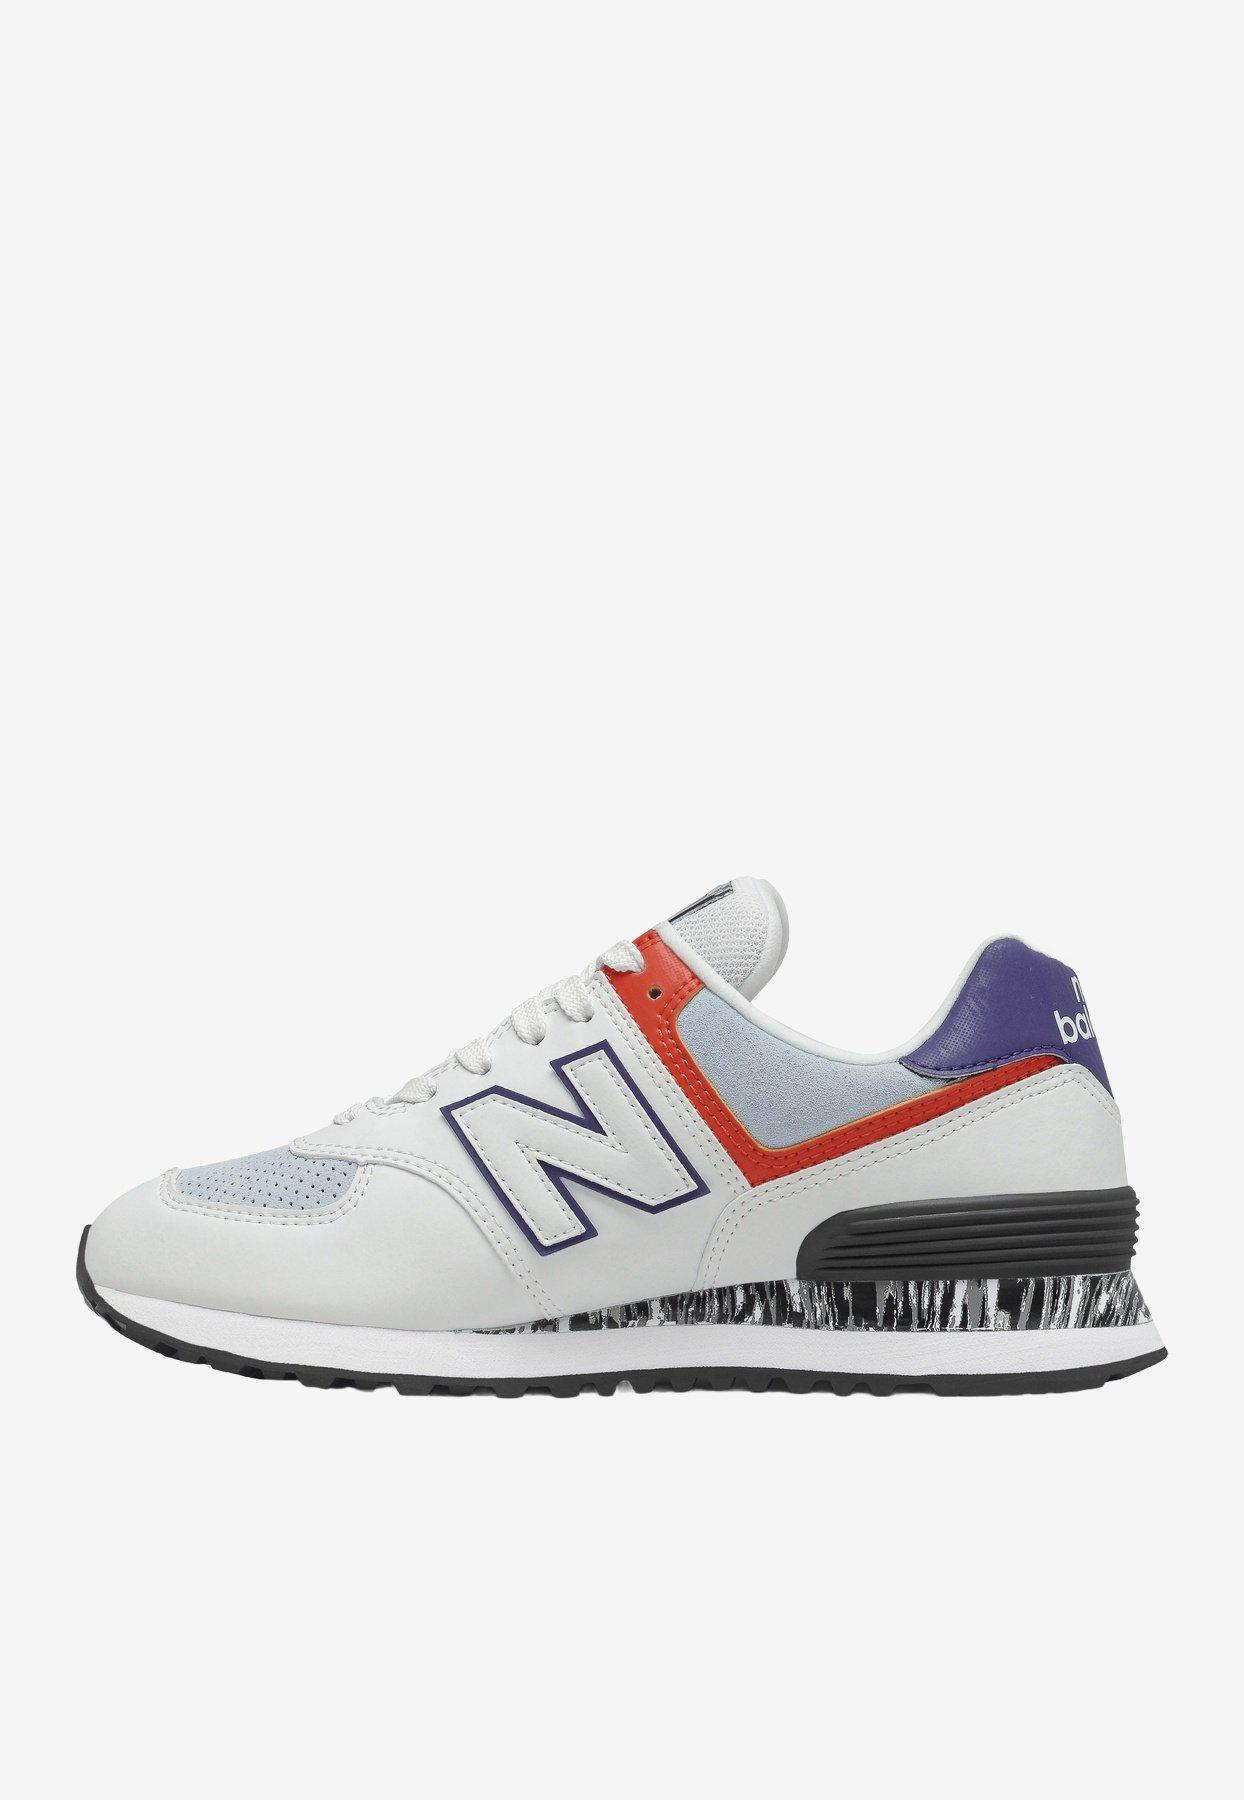 New Balance Leather 574 Sneakers In Ghost Pepper Eu 37 in White - Lyst